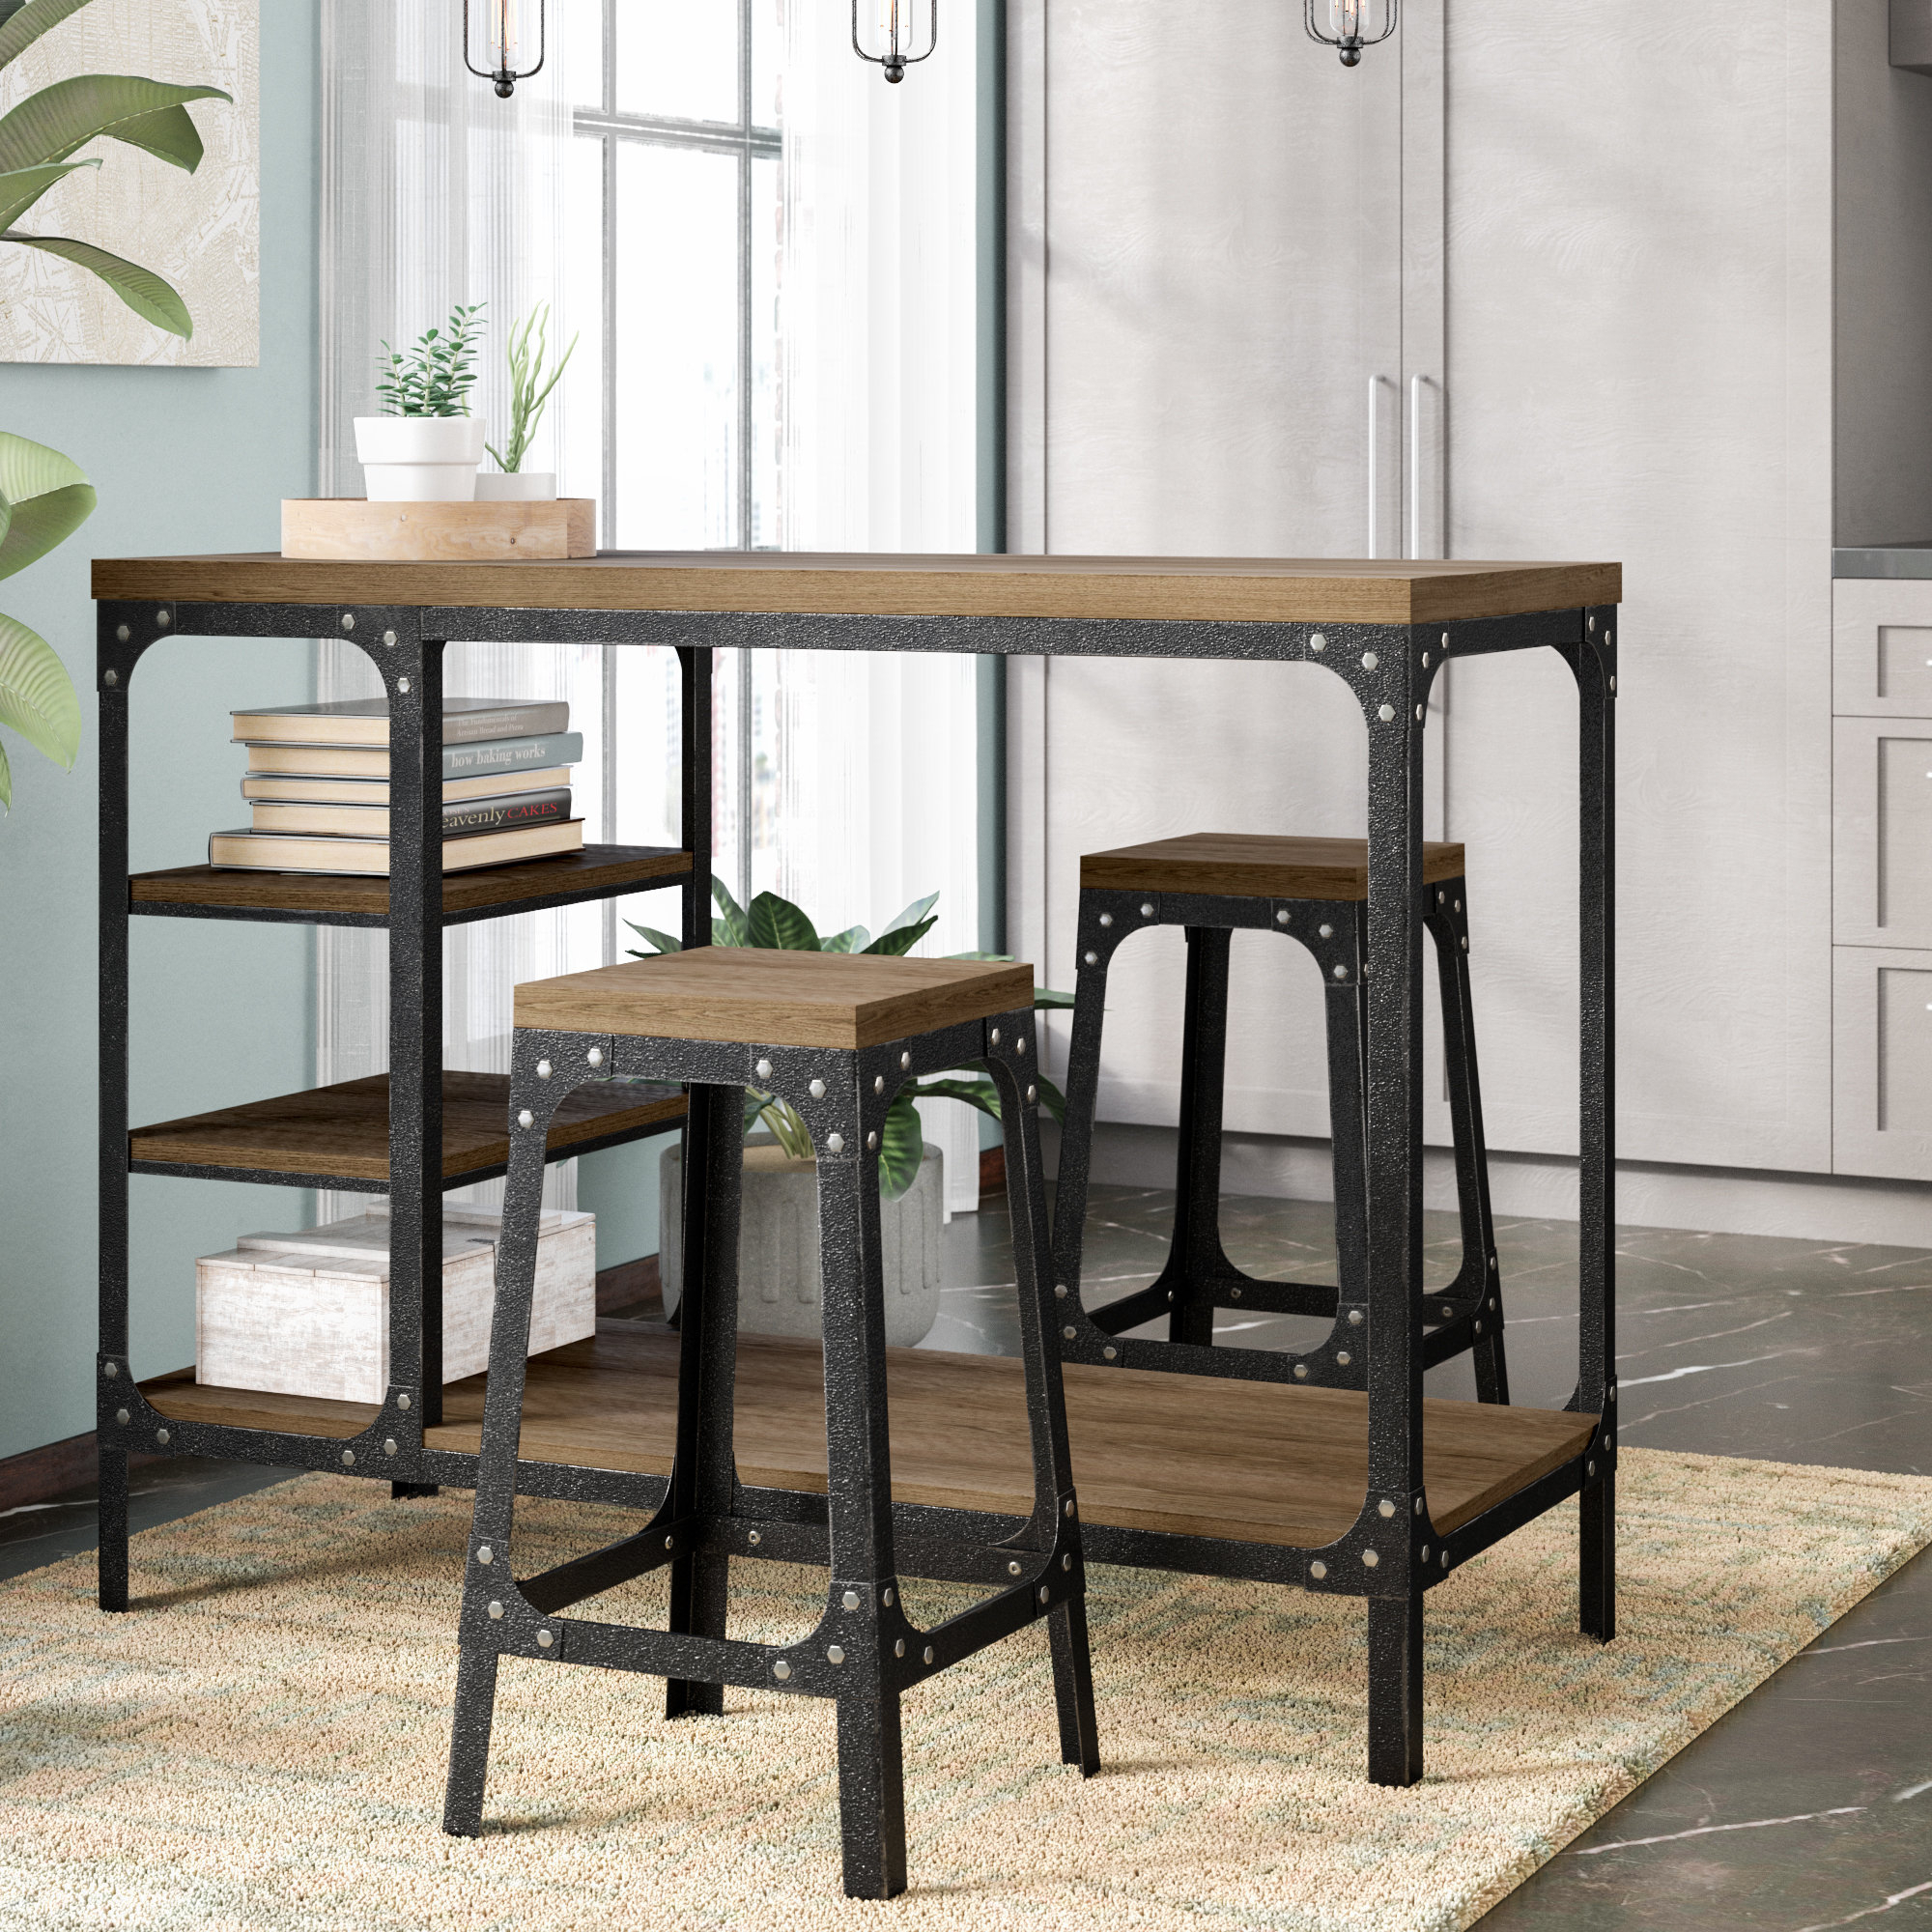 Current Williston Forge Terence 3 Piece Breakfast Nook Dining Set & Reviews With Regard To Winsted 4 Piece Counter Height Dining Sets (View 6 of 20)